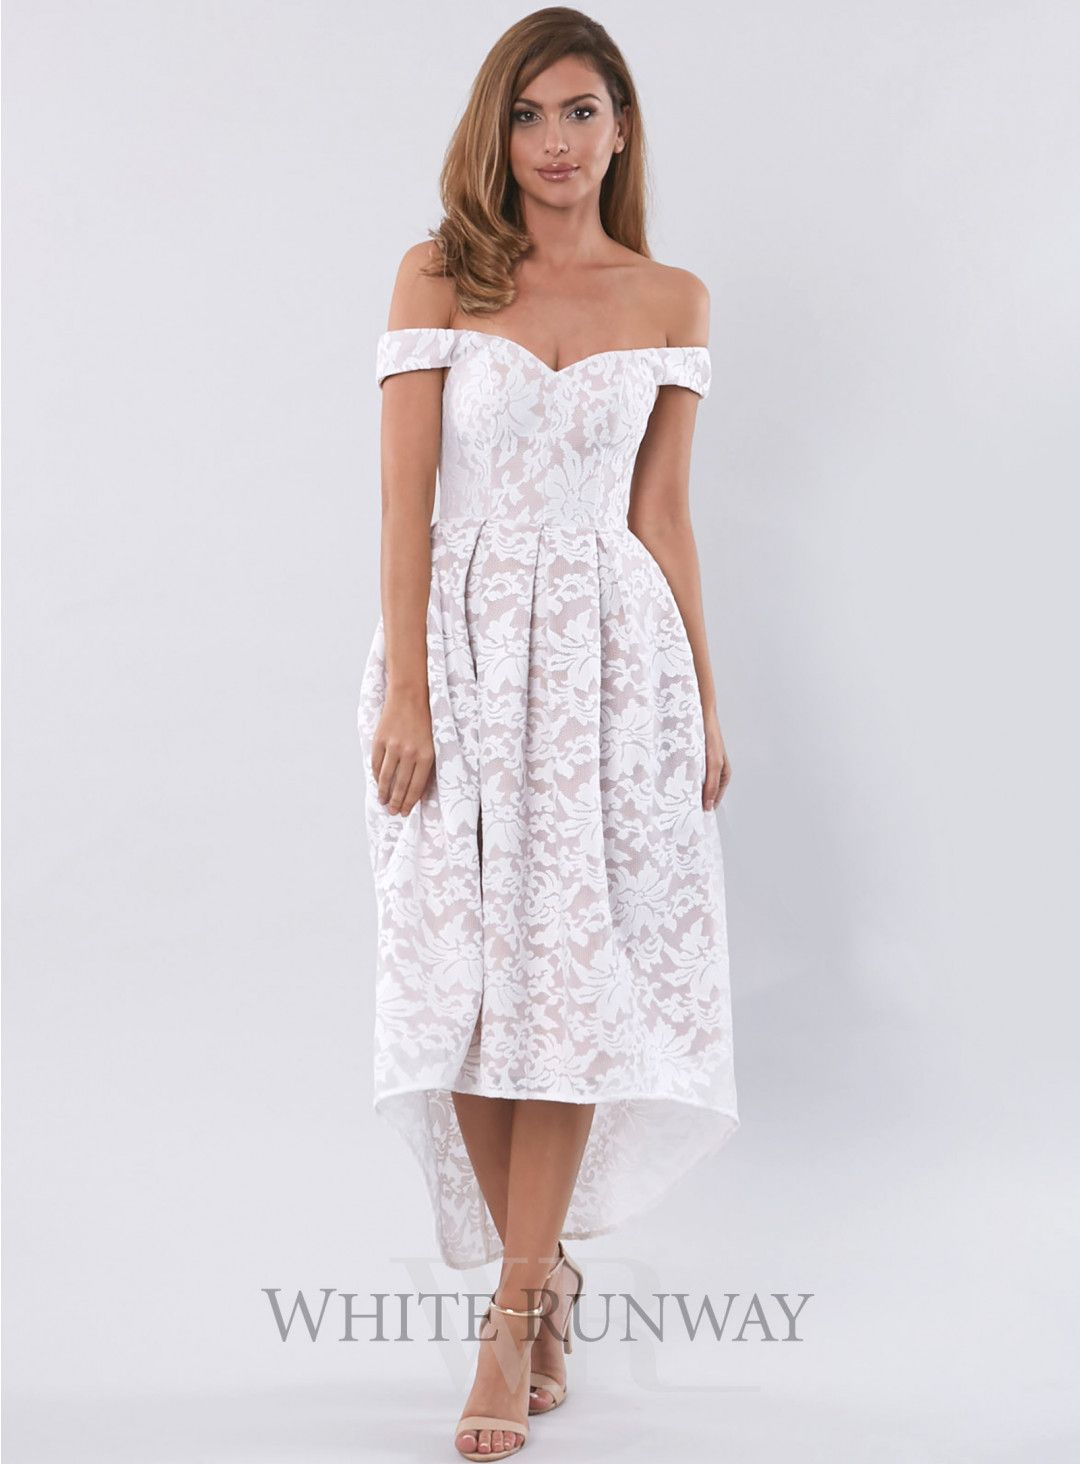 51885543a6f Mia Dress. A gorgeous midi length dress by Love Honor. A mesh floral embroidered  lace dress with a hi-lo pleated skirt and off shoulder detailing.